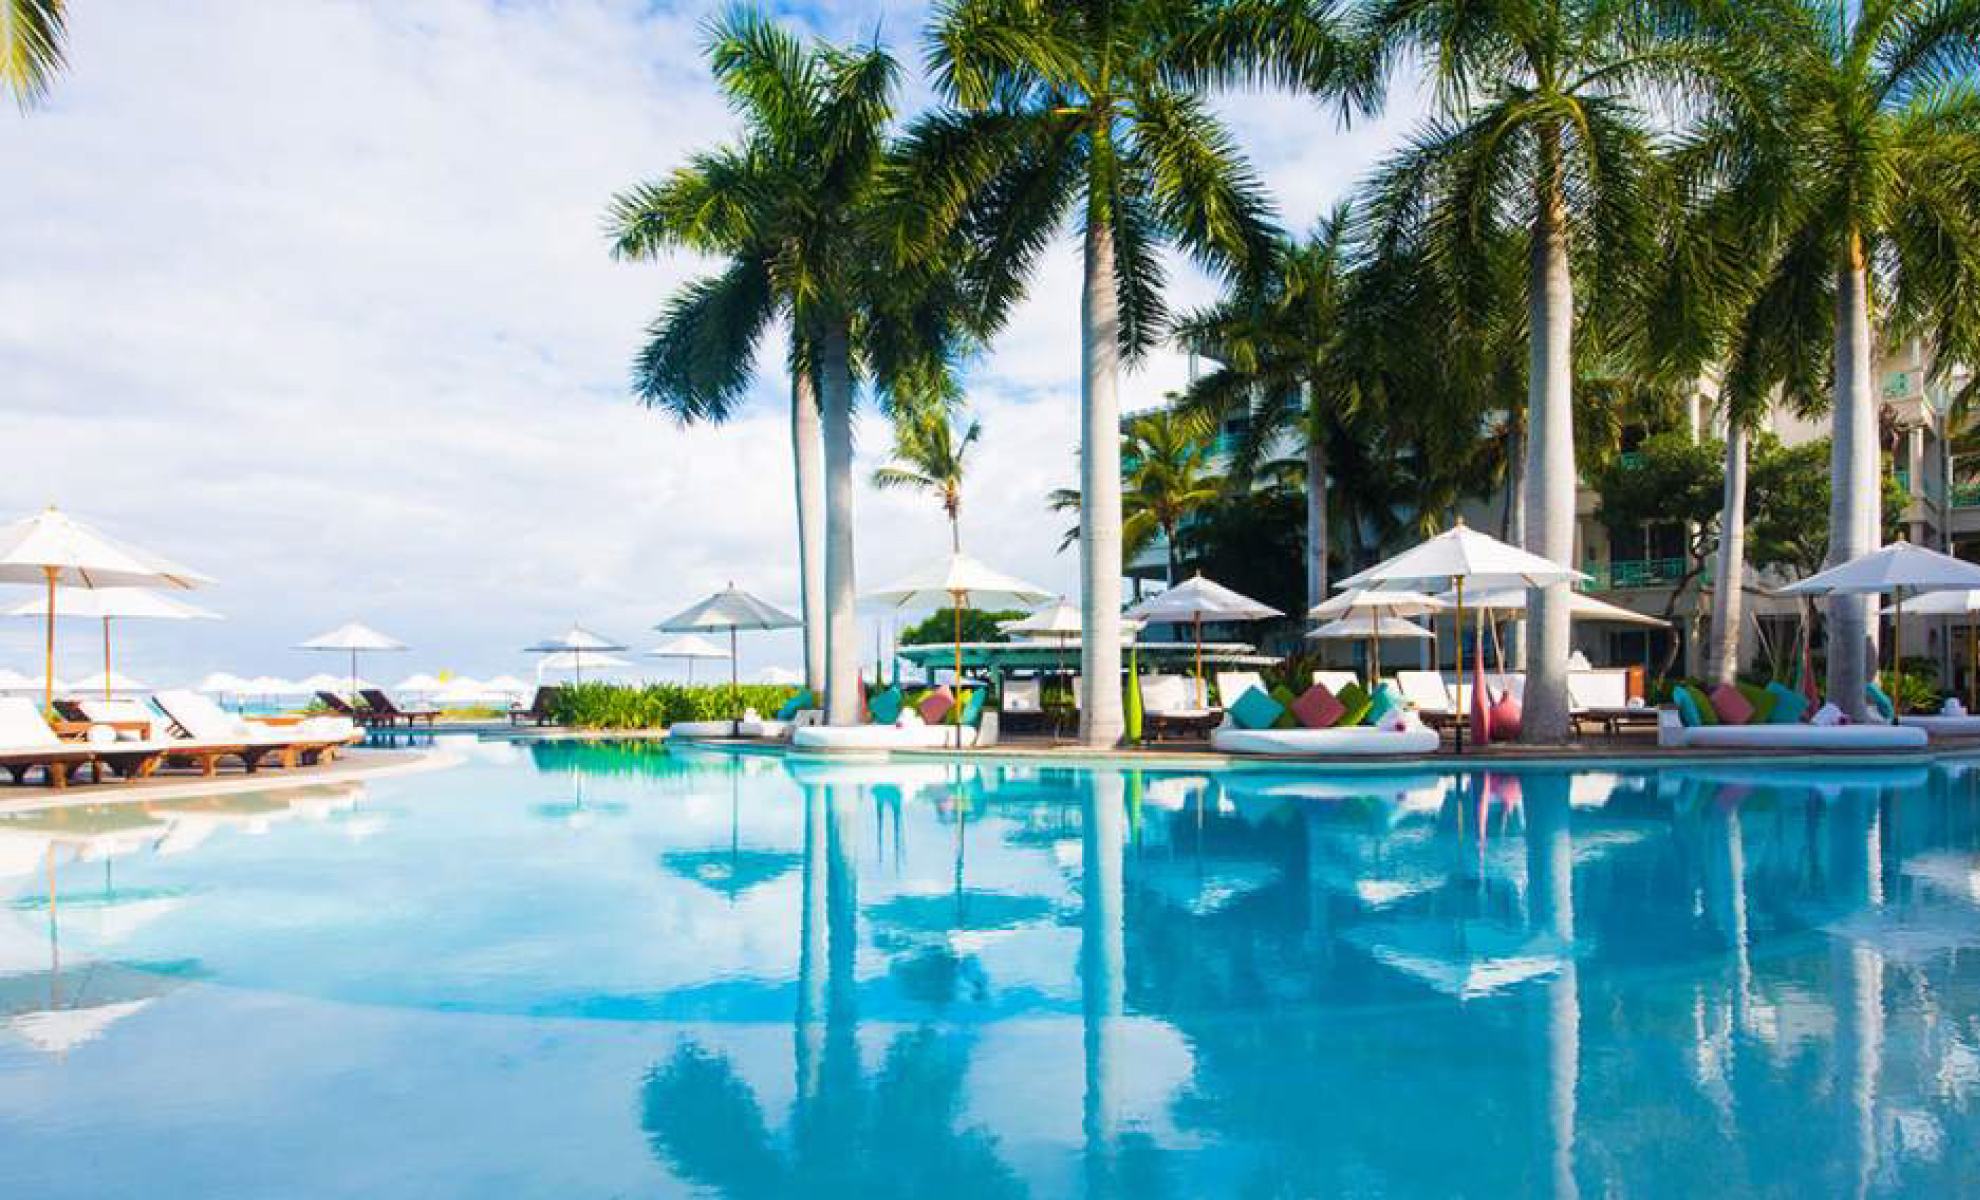 Resort Security Manager